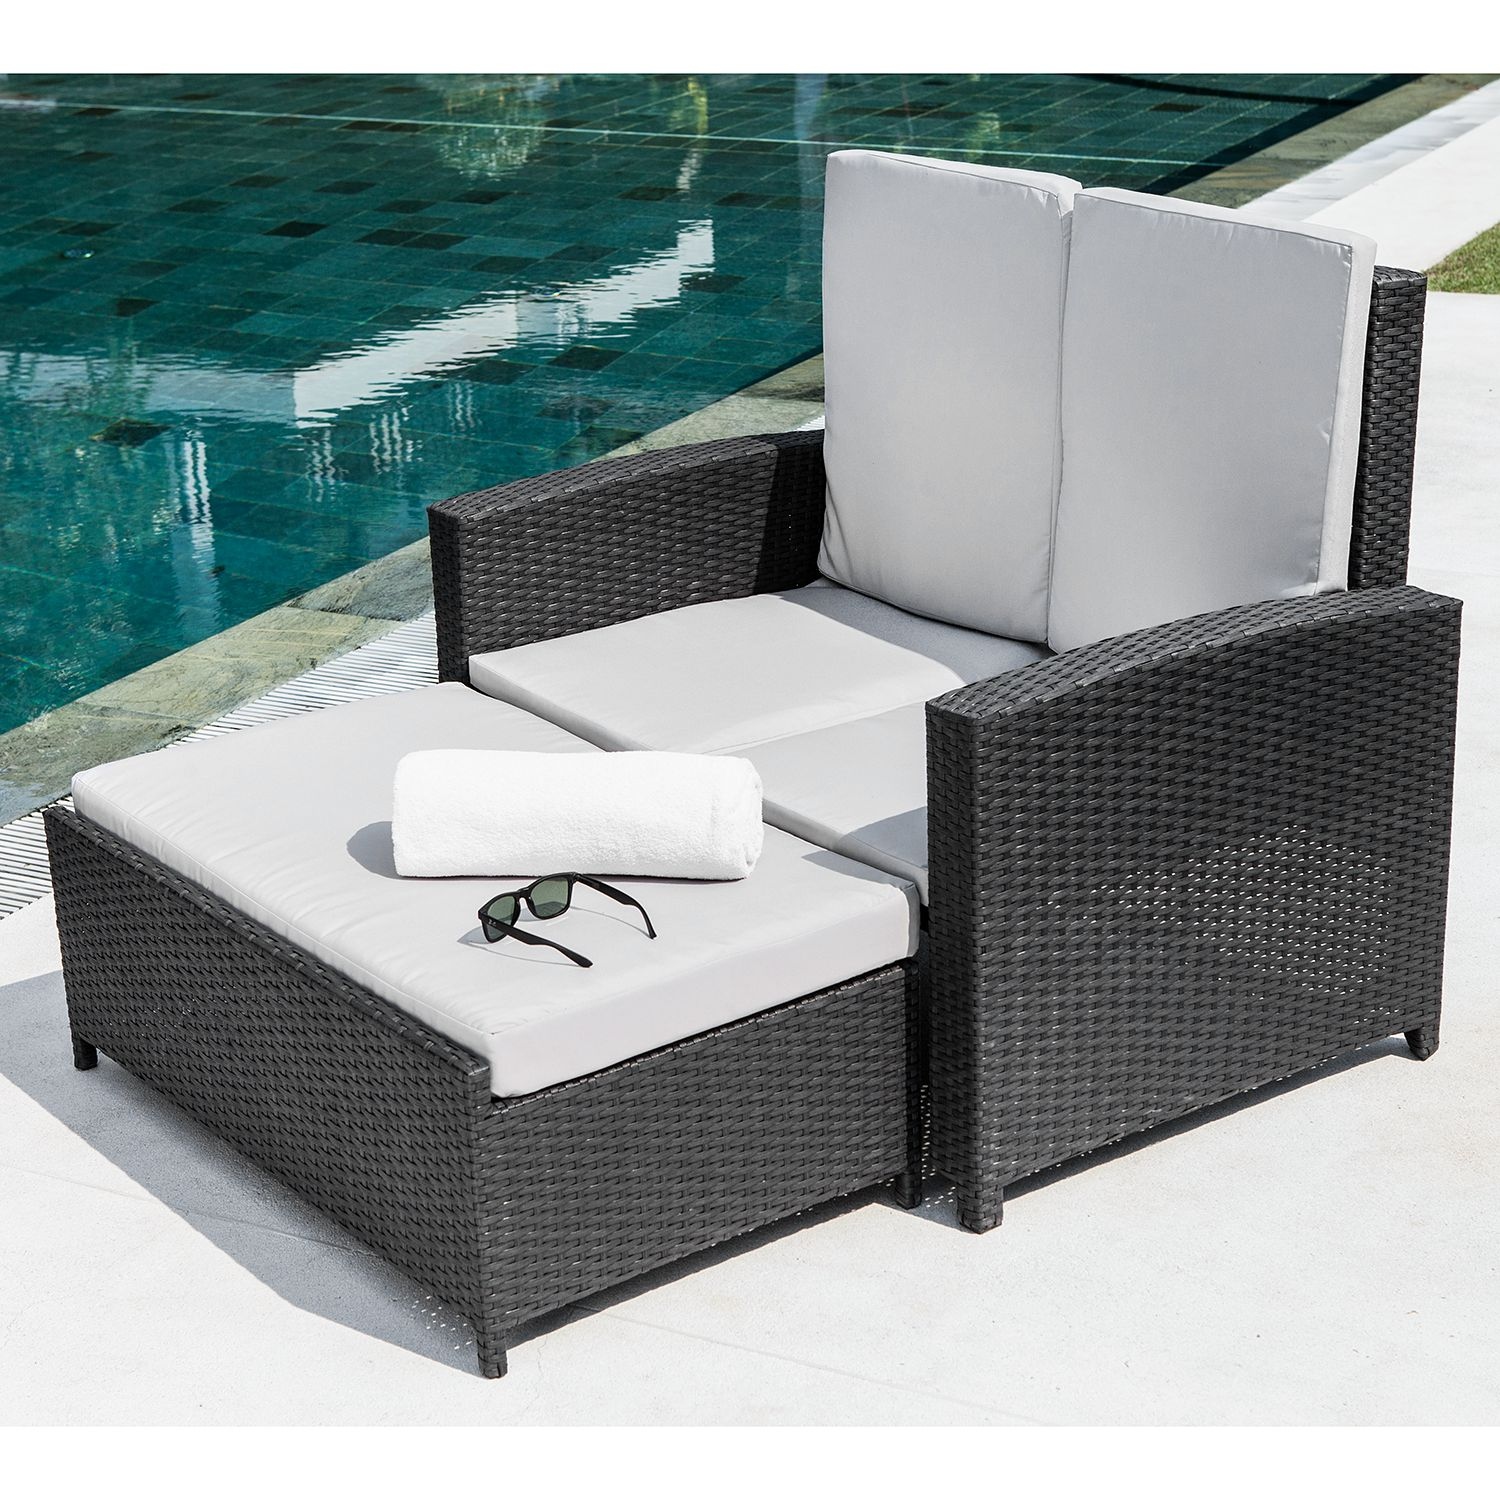 12 sparen gartensofa paradise lounge inkl hocker nur 349 99 cherry m bel. Black Bedroom Furniture Sets. Home Design Ideas